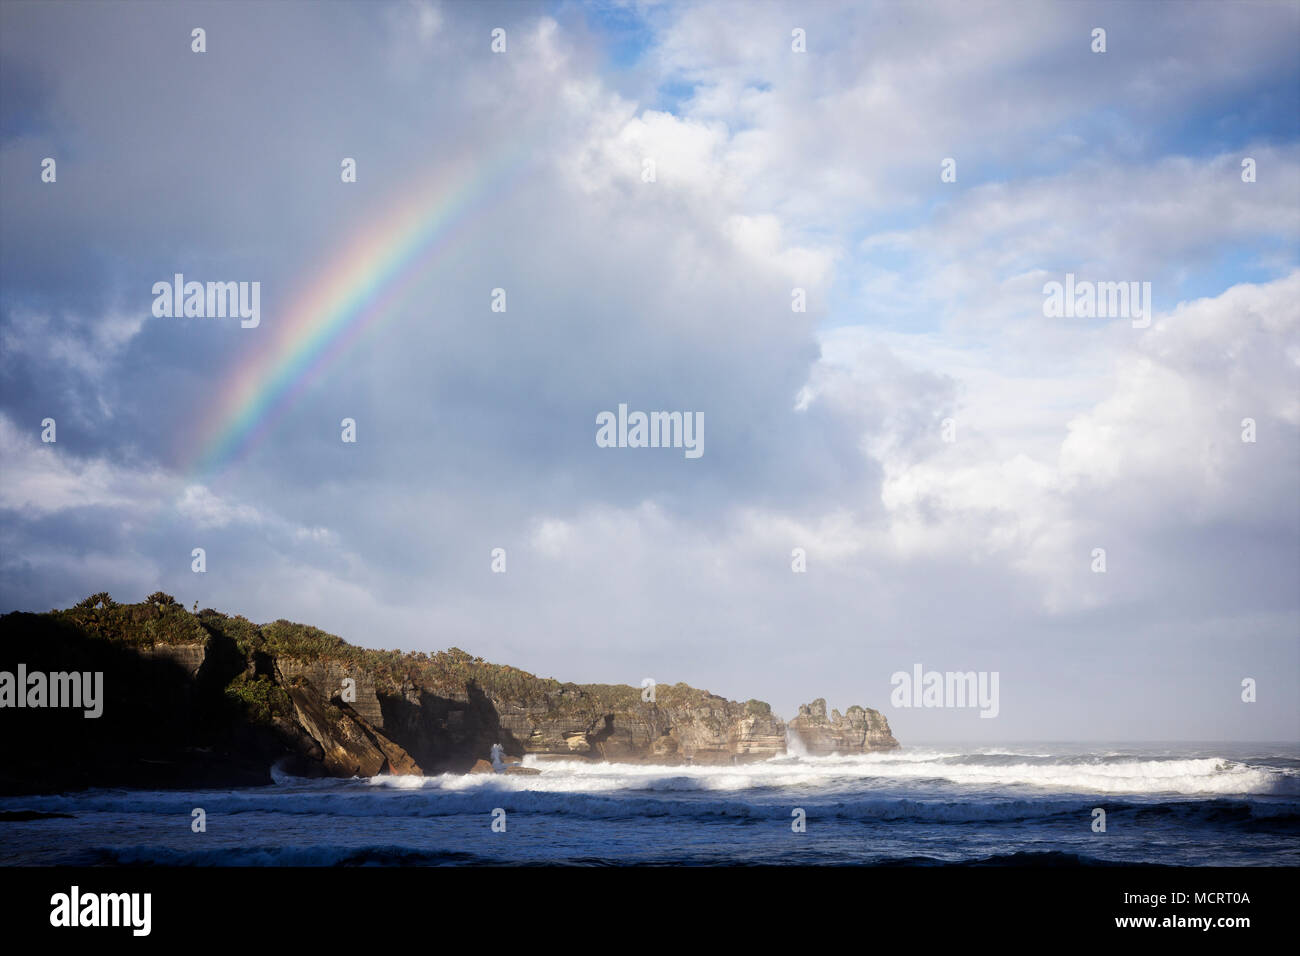 A rainbow shows over Dolomite Point at Punakaiki along the West Coast Region of the South Island, New Zealand. - Stock Image